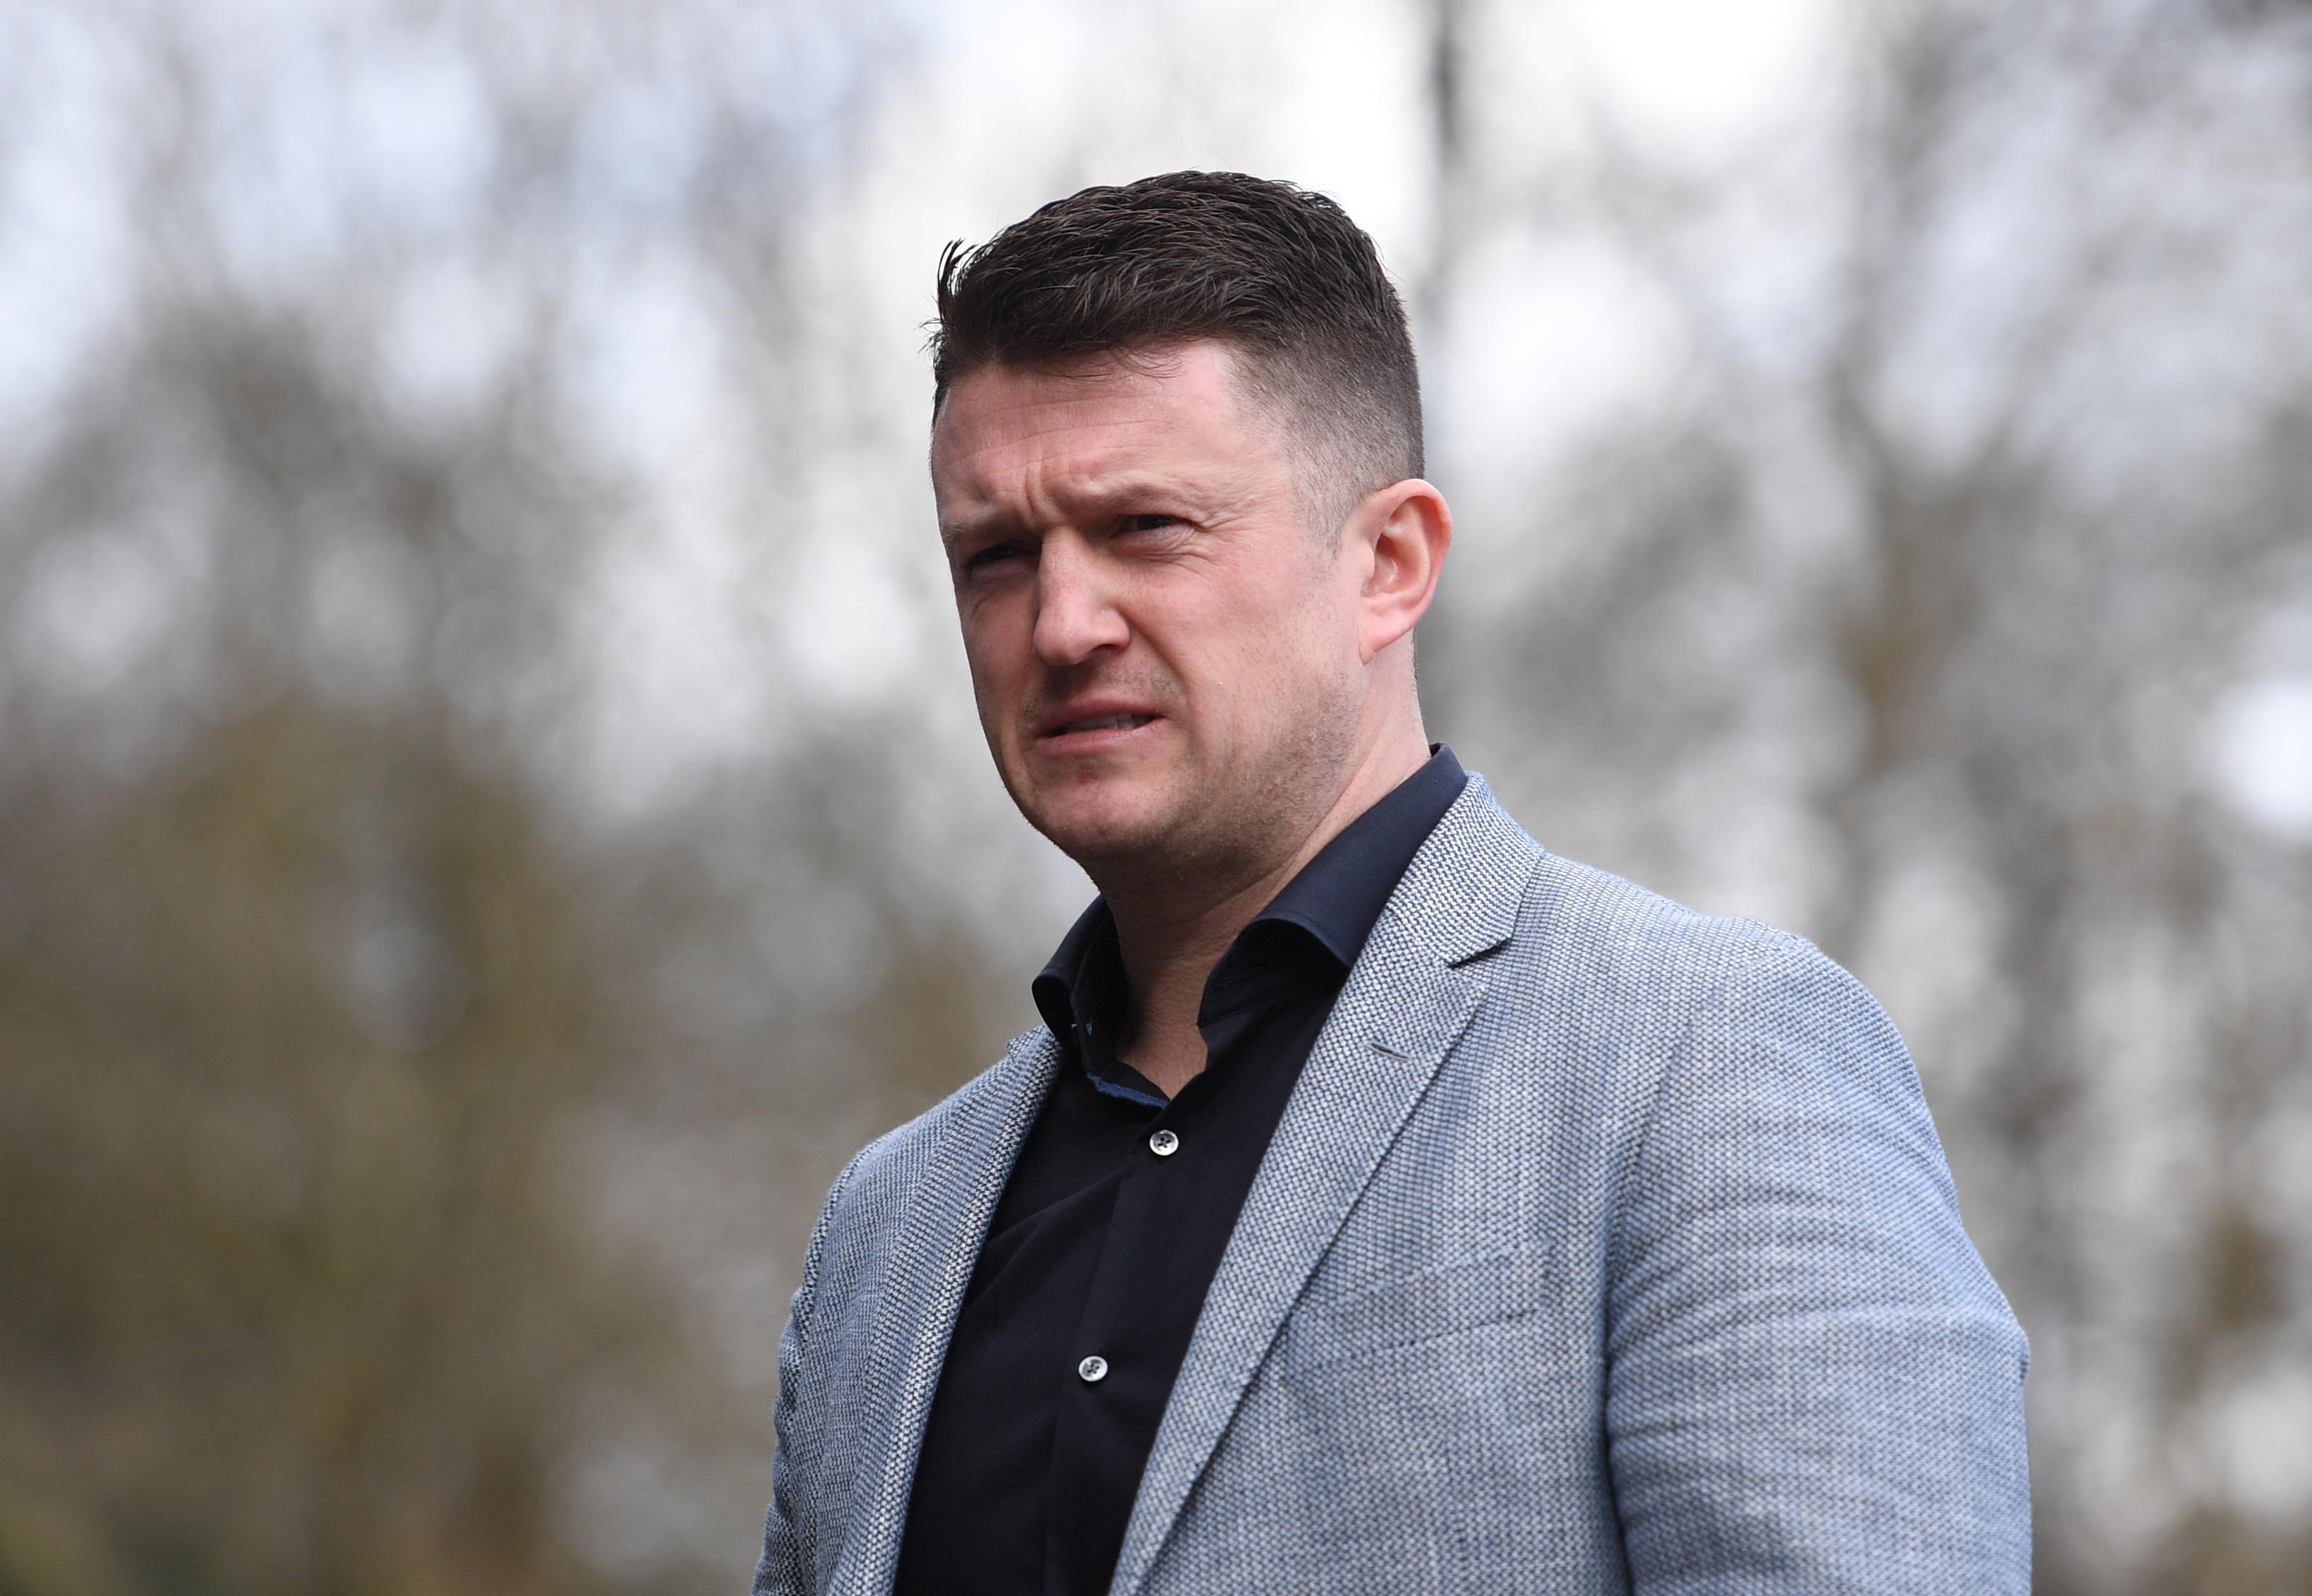 Historian suing Tommy Robinson after 'harassment and intimidation' at his house